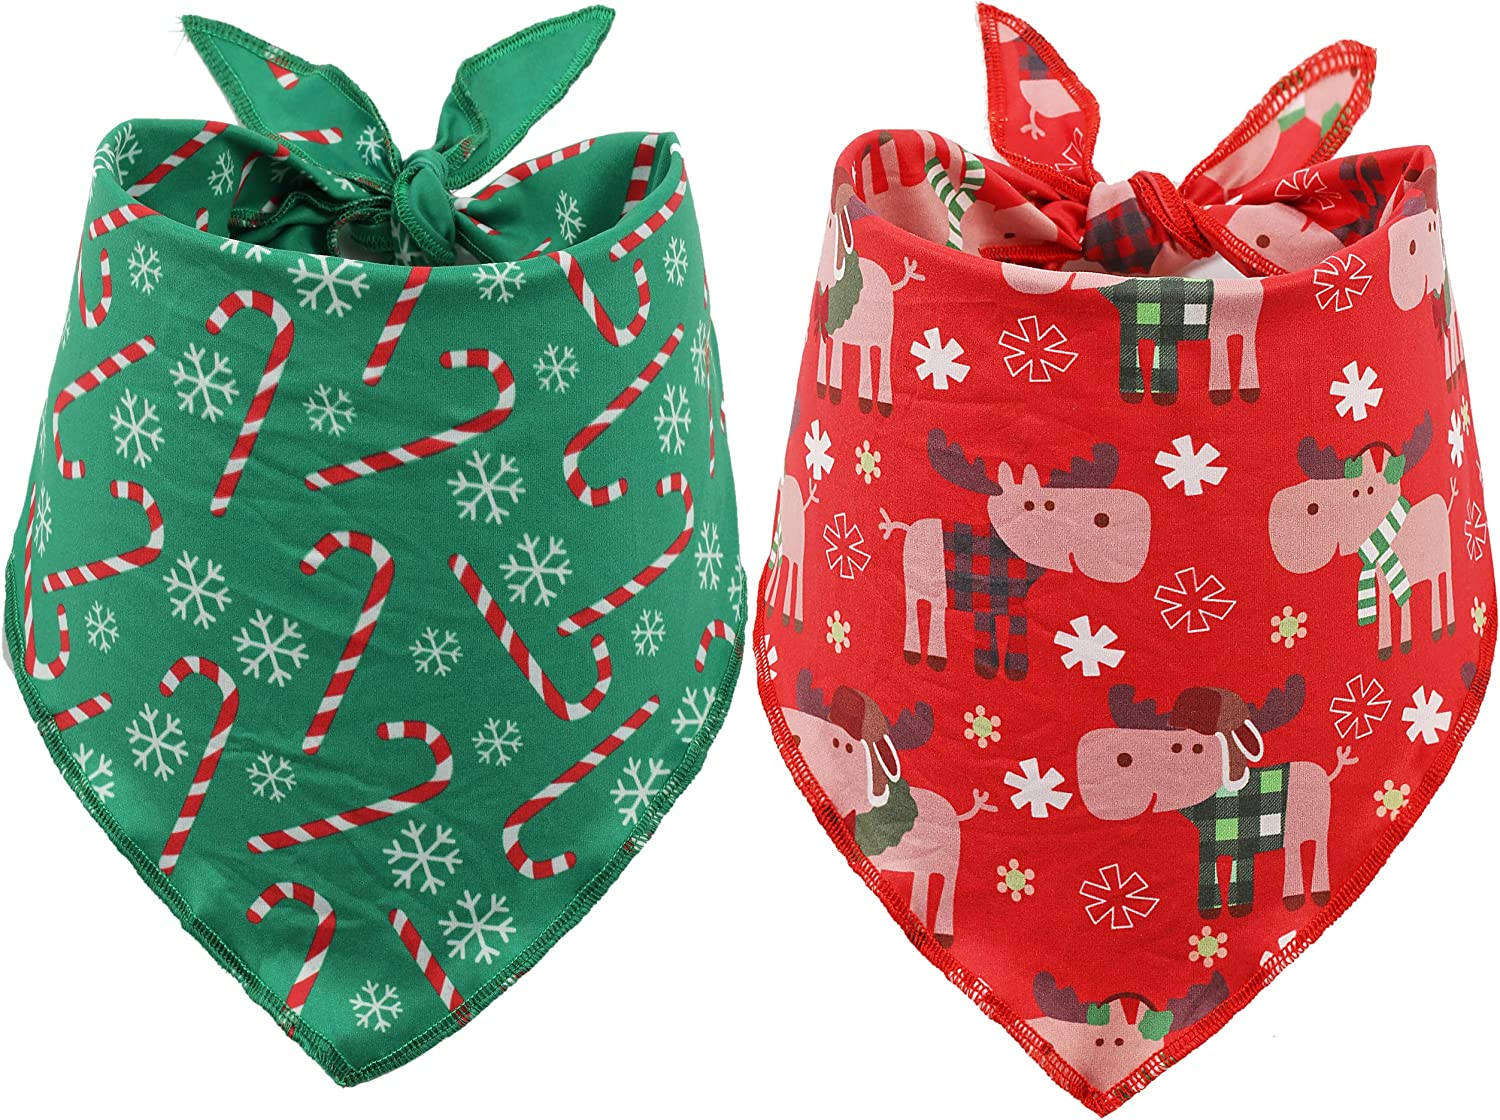 BoomBone 2 Pack Christmas Bandana for Pet Sca Shipping included Triangle Genuine Free Shipping Dogs Bibs